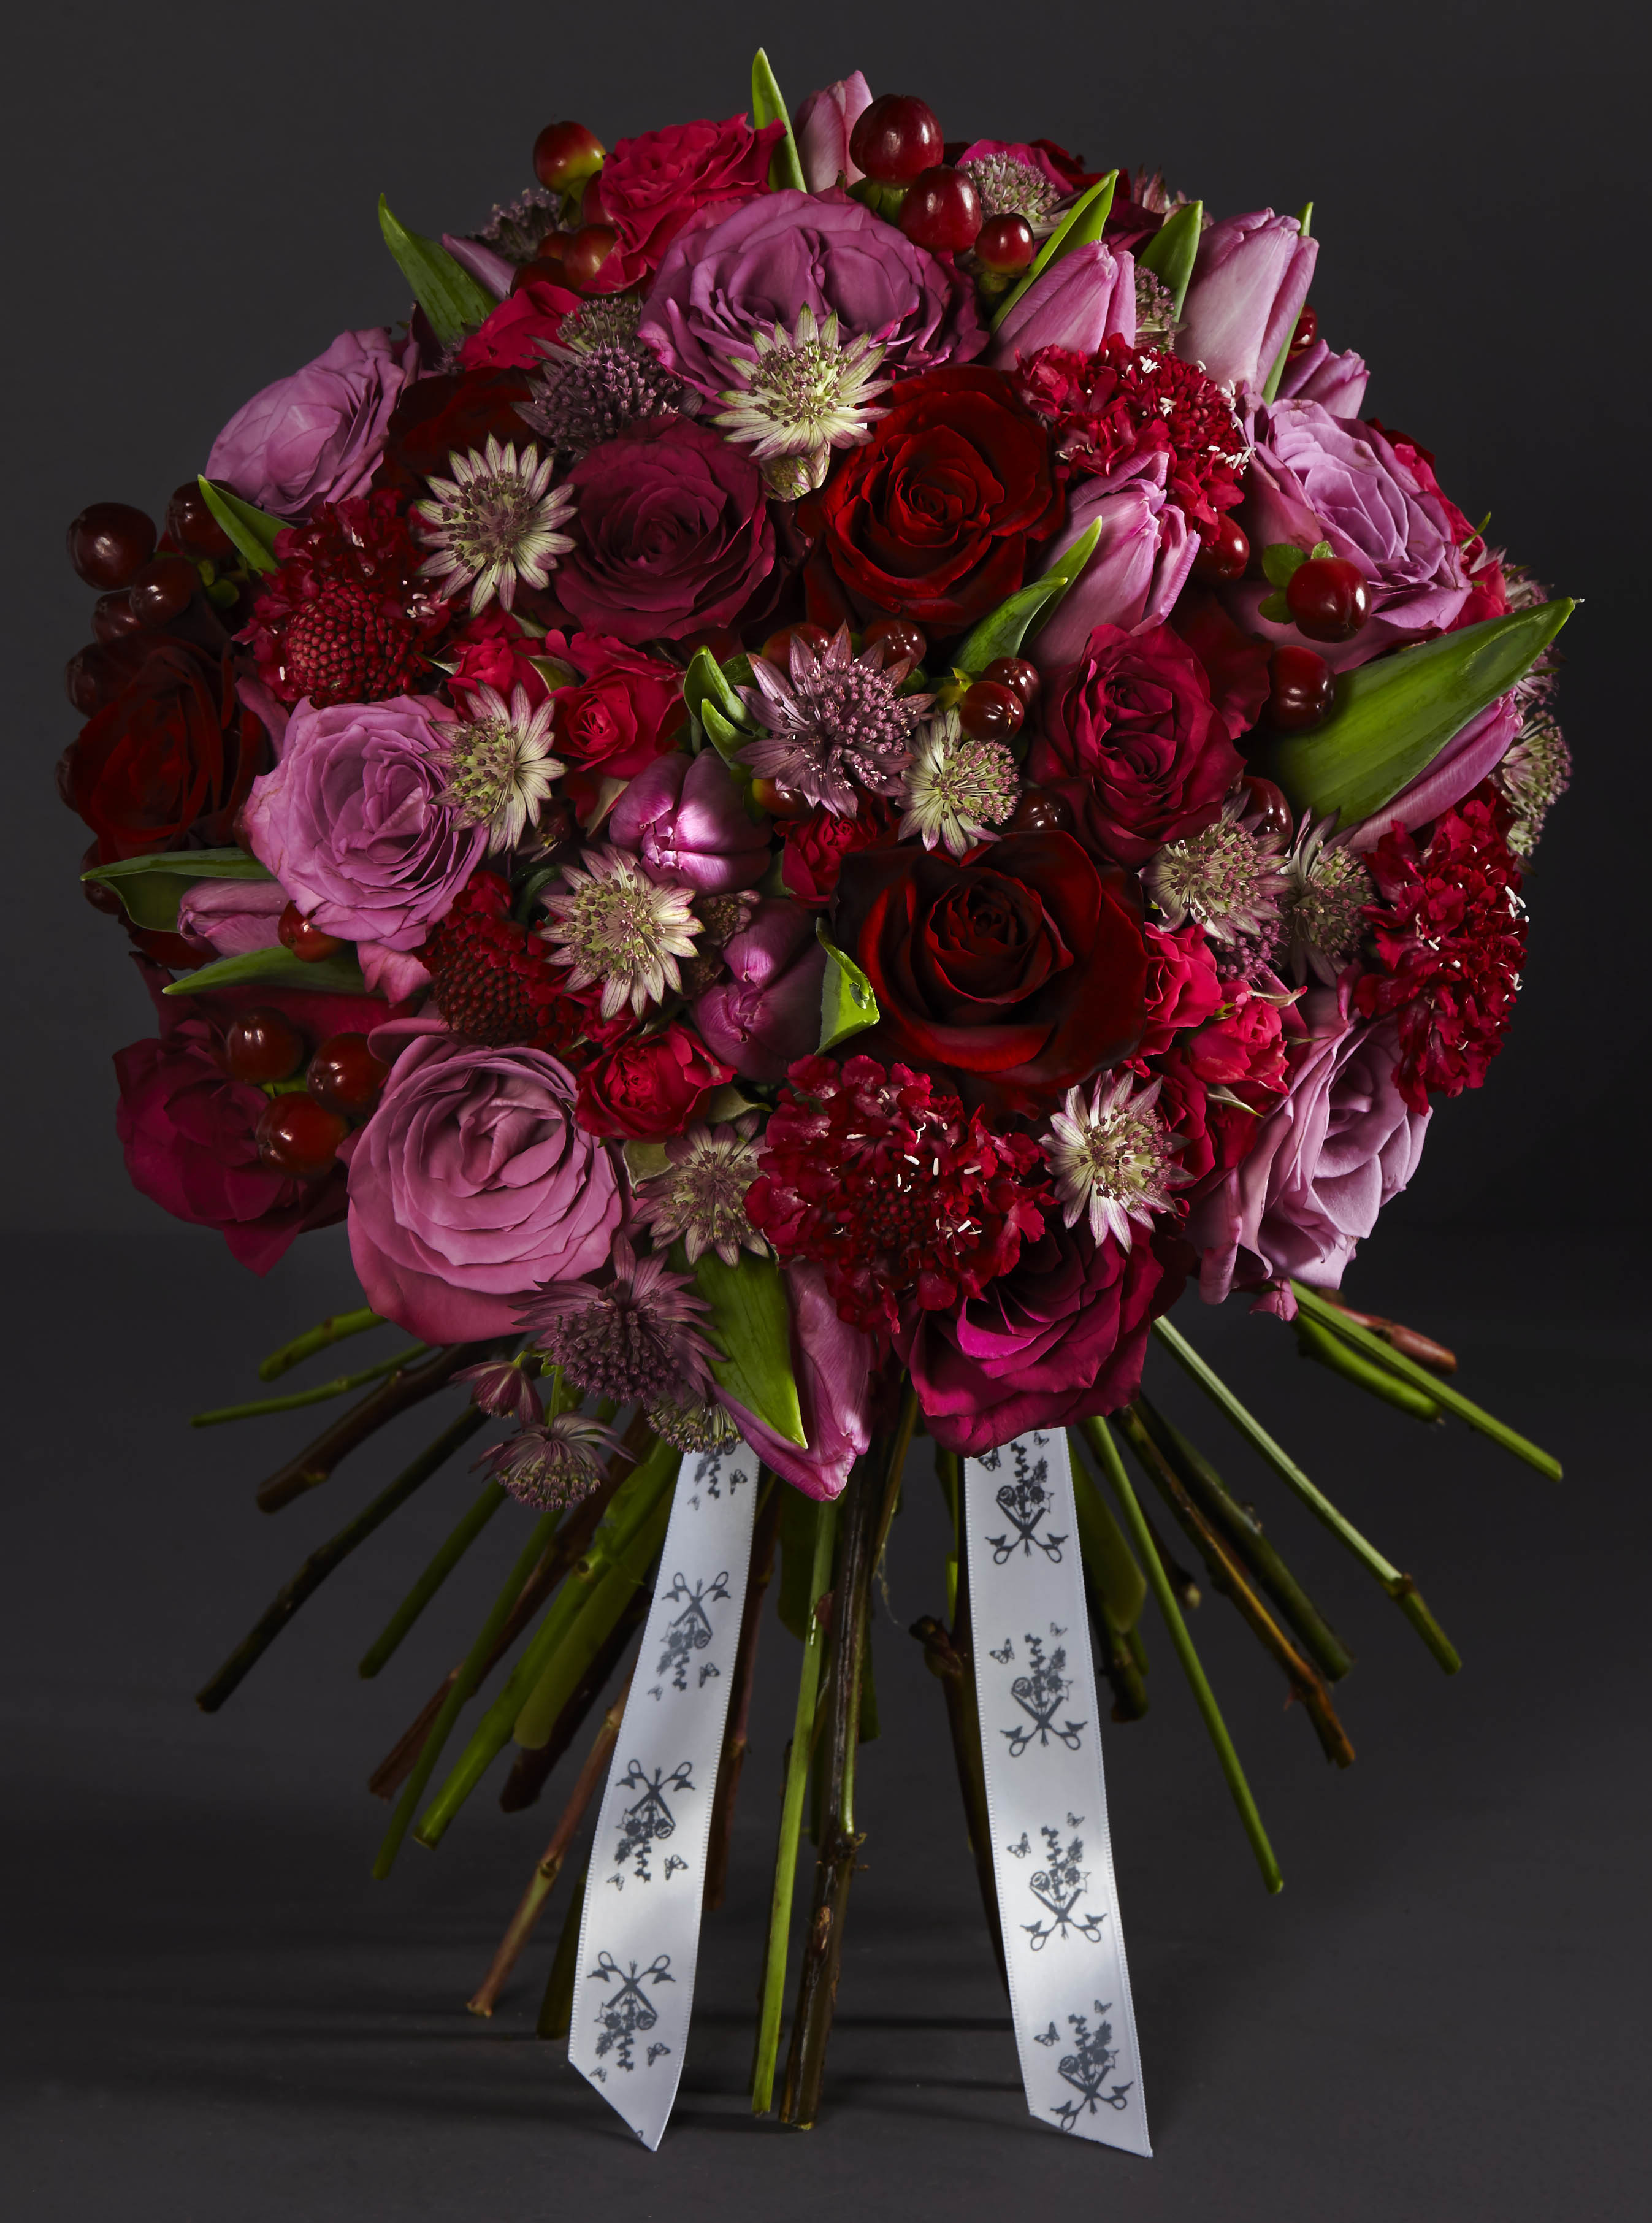 valentines day flowers larry walshe top tips london flowers